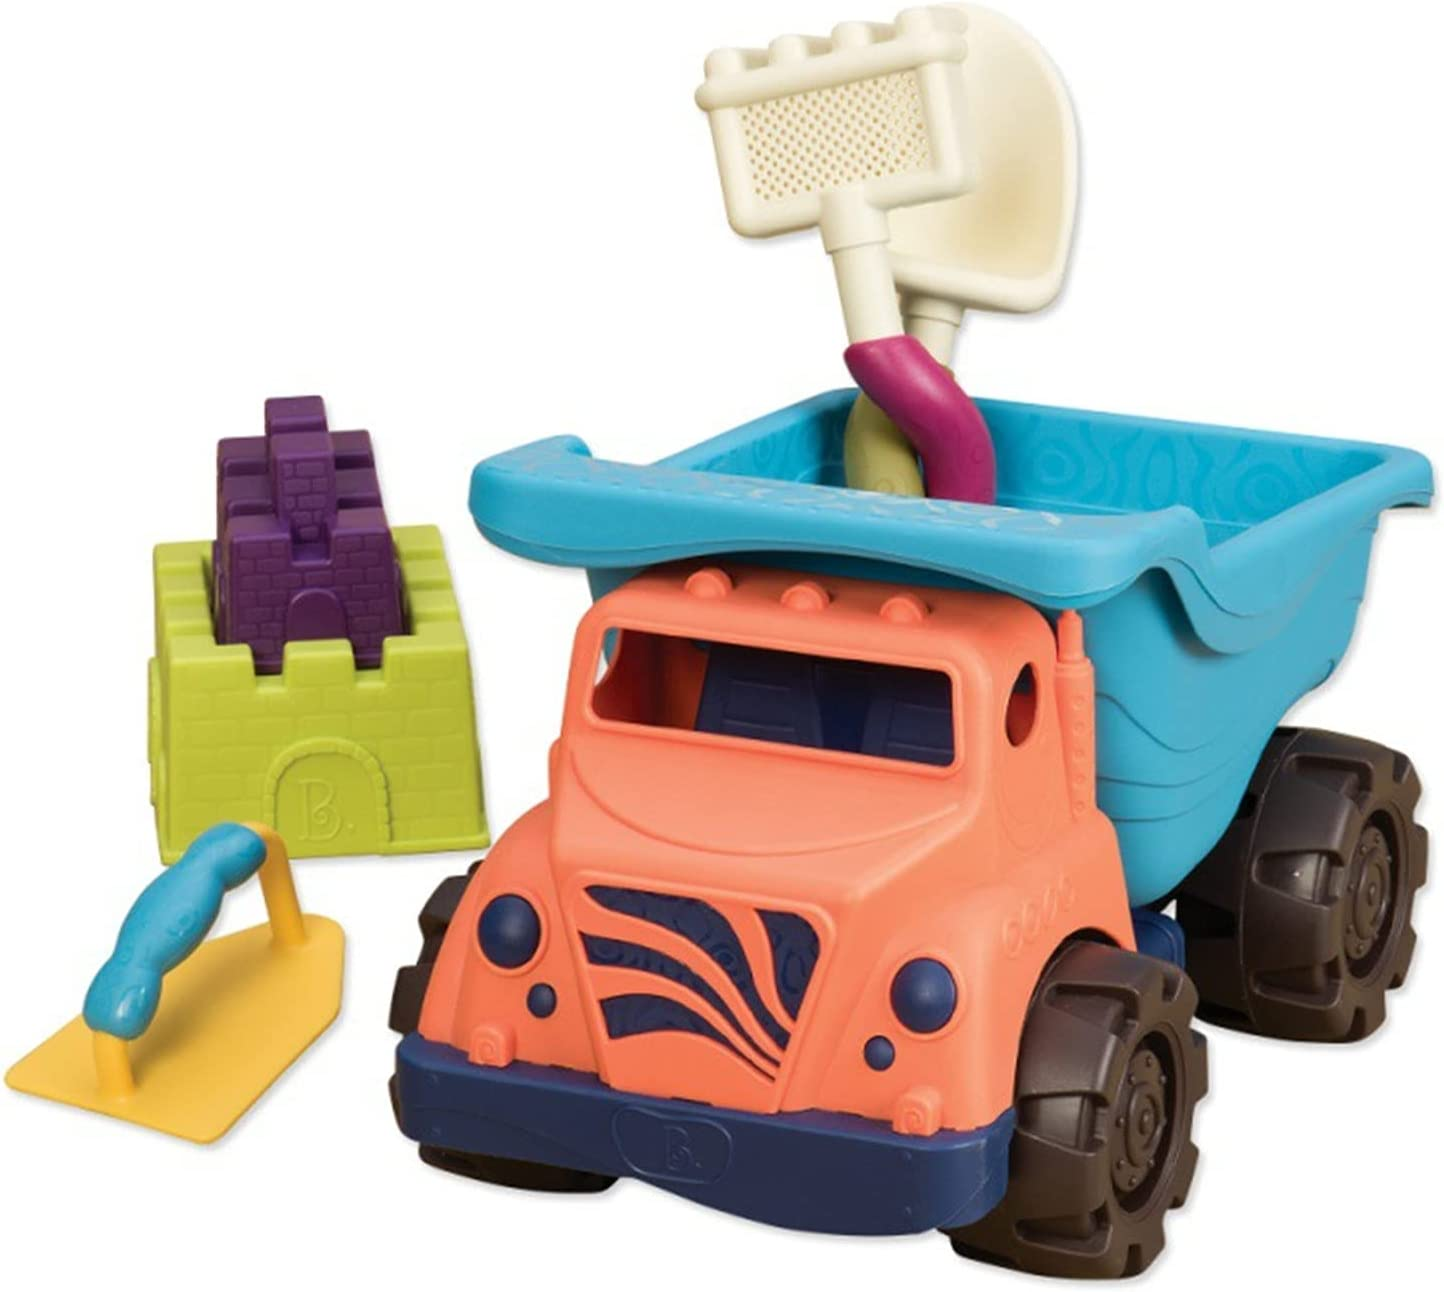 HQ2 Truck Animer and price revision Beach Toy Store Set,Outdoor Toys Sand for Kids,Includes